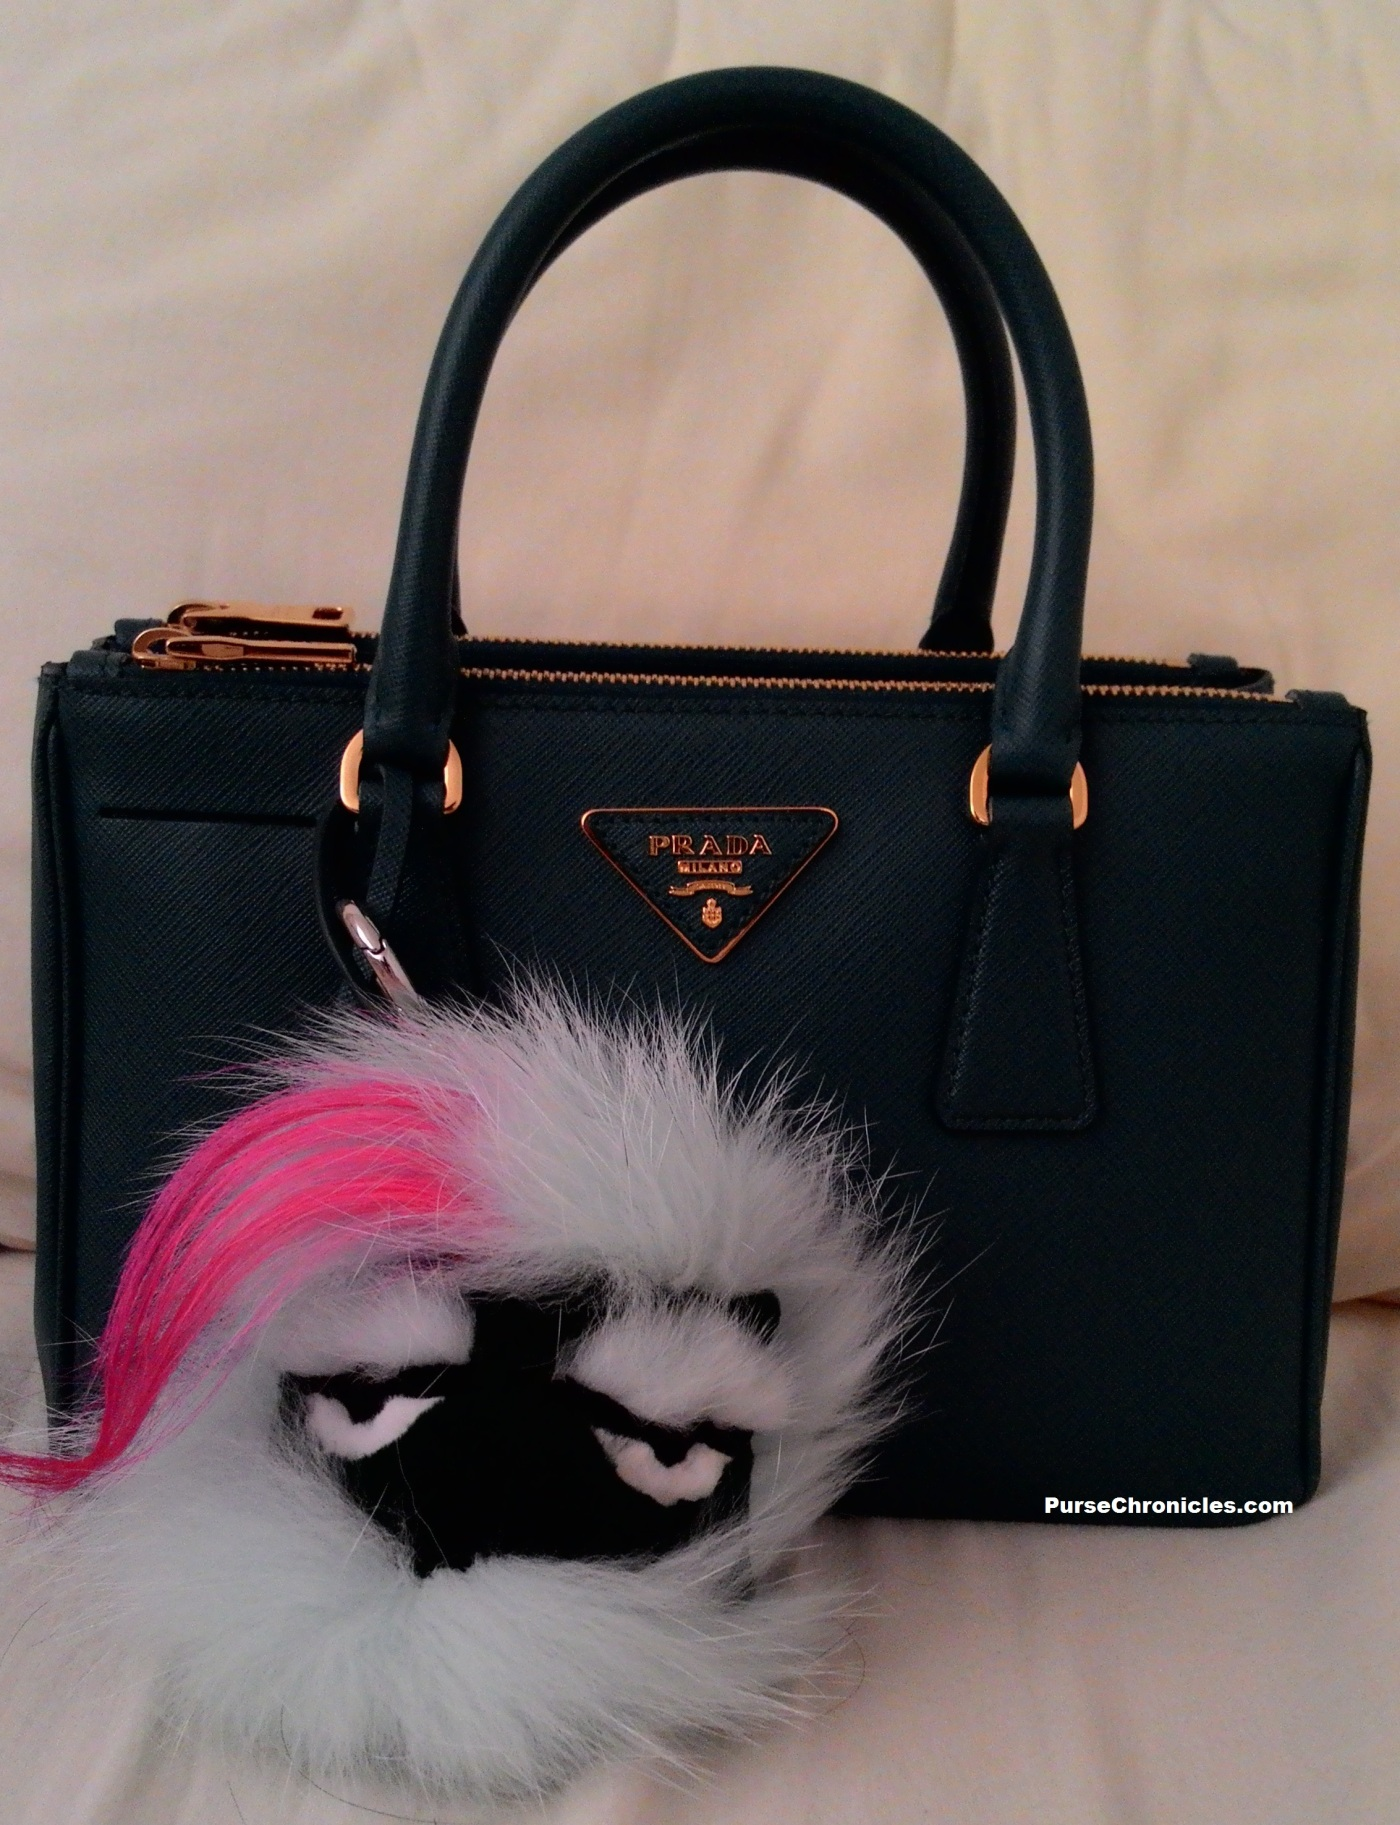 dff52d5c5ab1 Bag Review  Prada Saffiano Double-Zip Tote (BN2316)